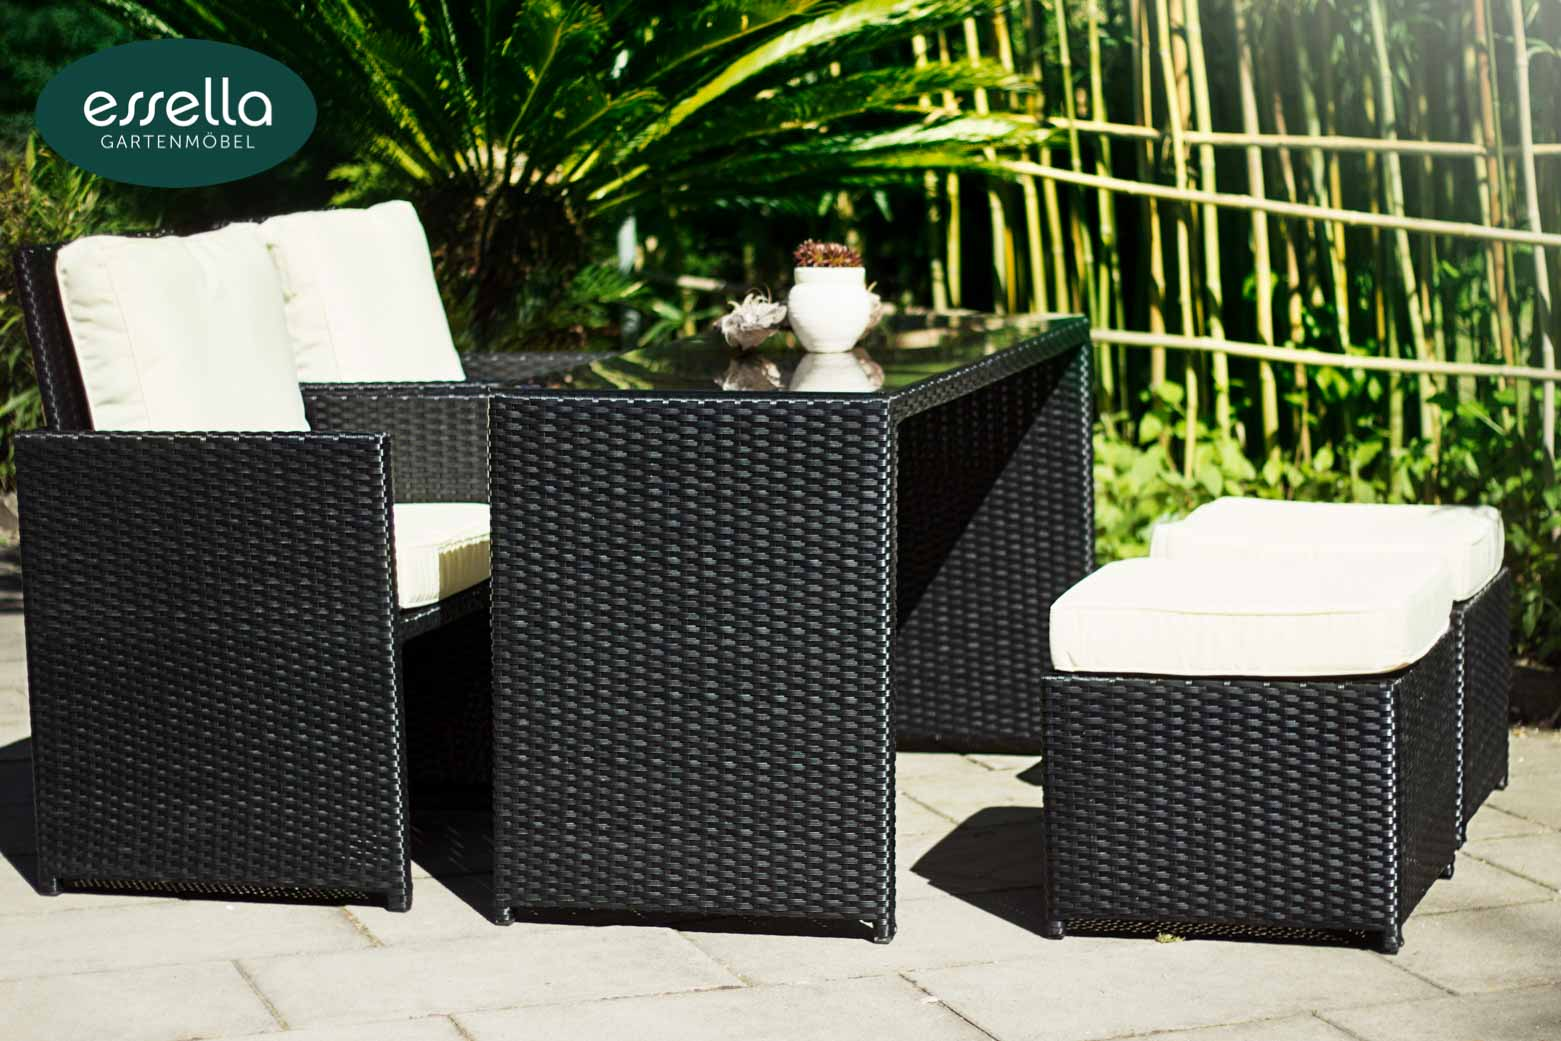 essella polyrattan sitzgruppe vienna 2 personen. Black Bedroom Furniture Sets. Home Design Ideas